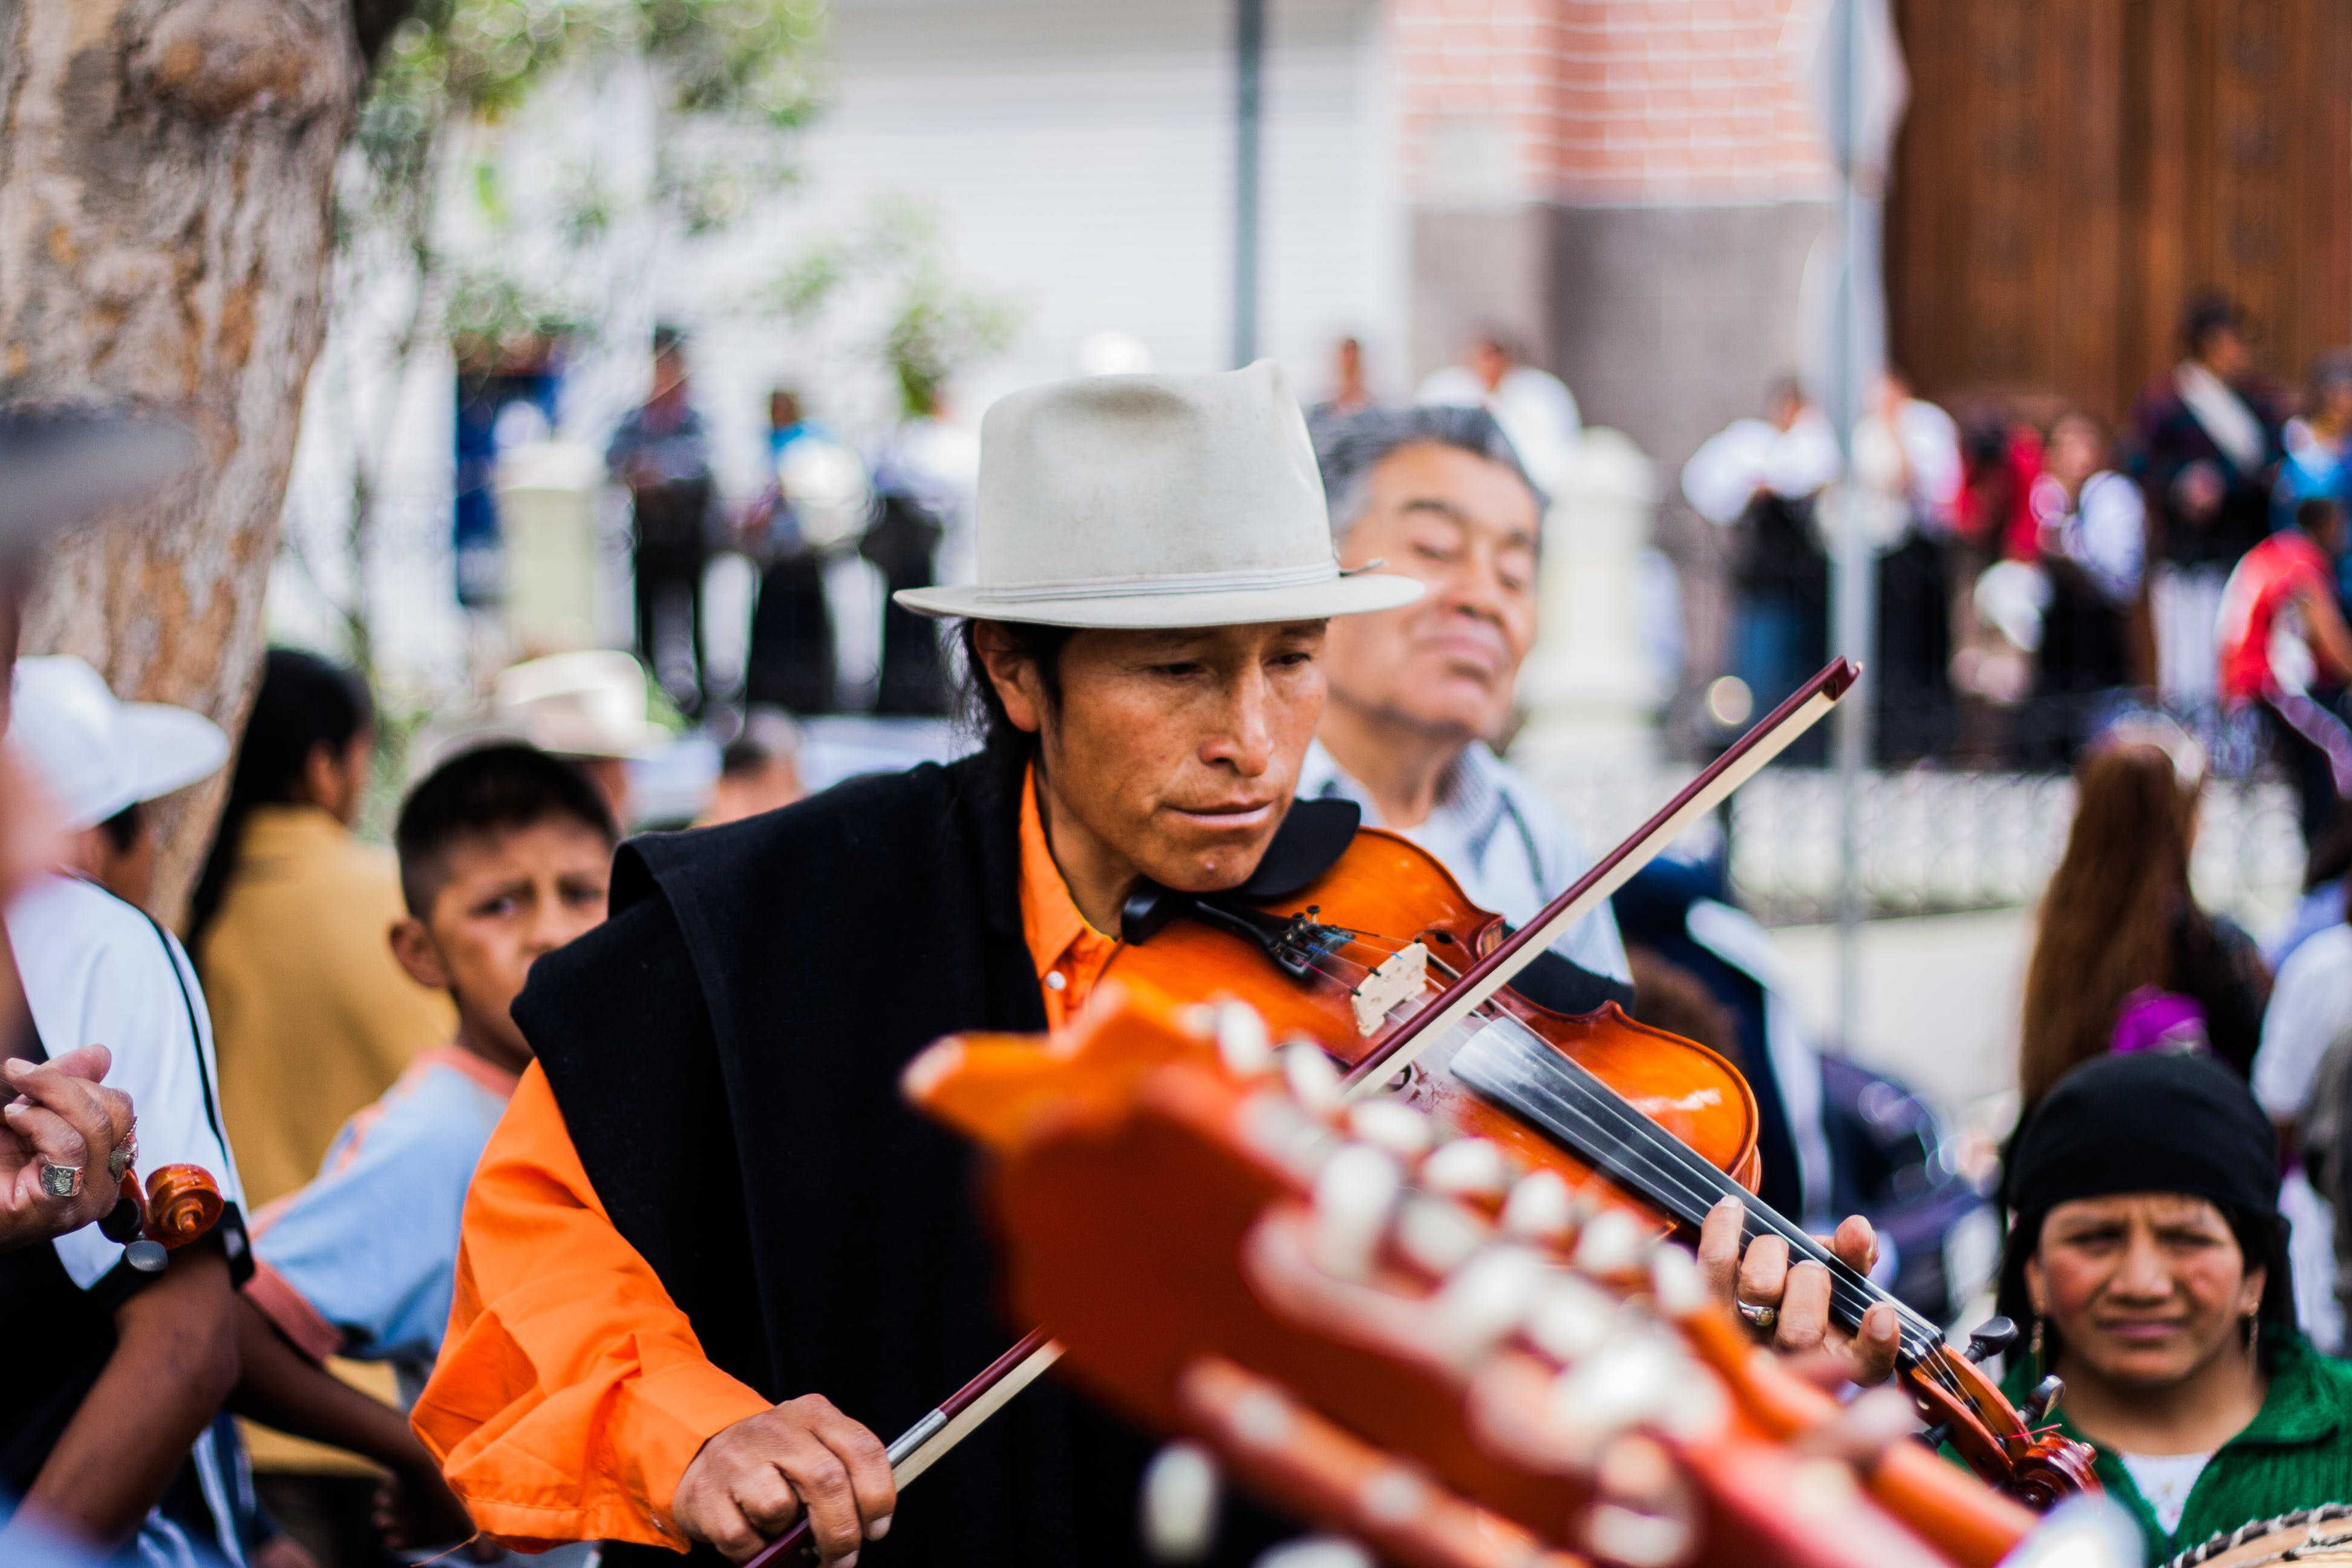 Man Playing the Violin on the Street